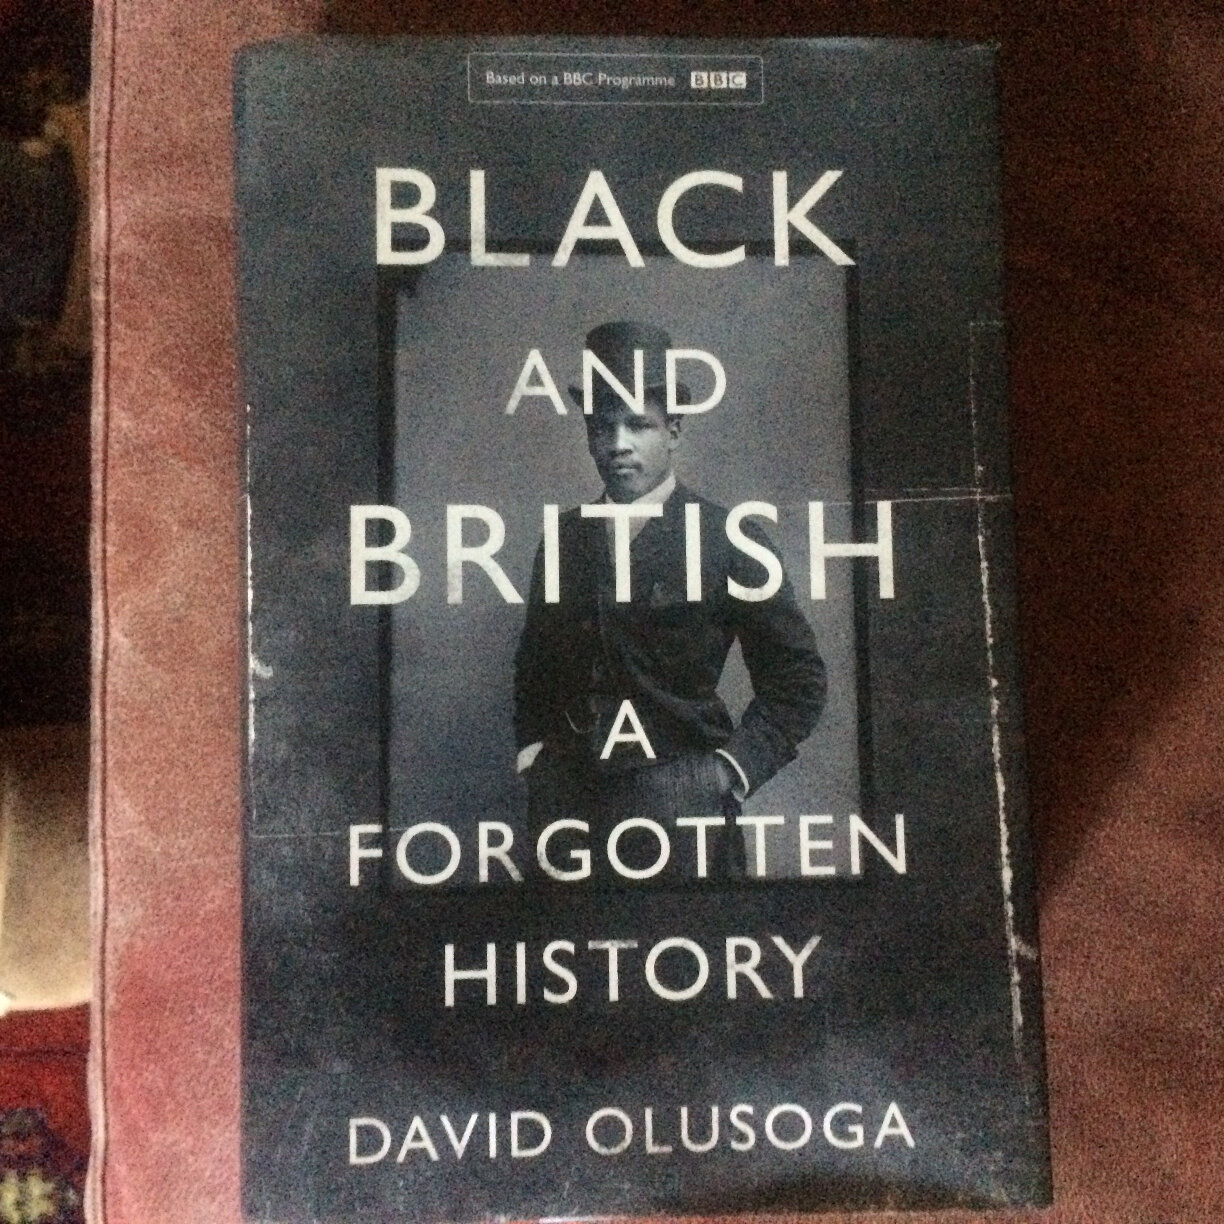 Black and British (and Stroud)